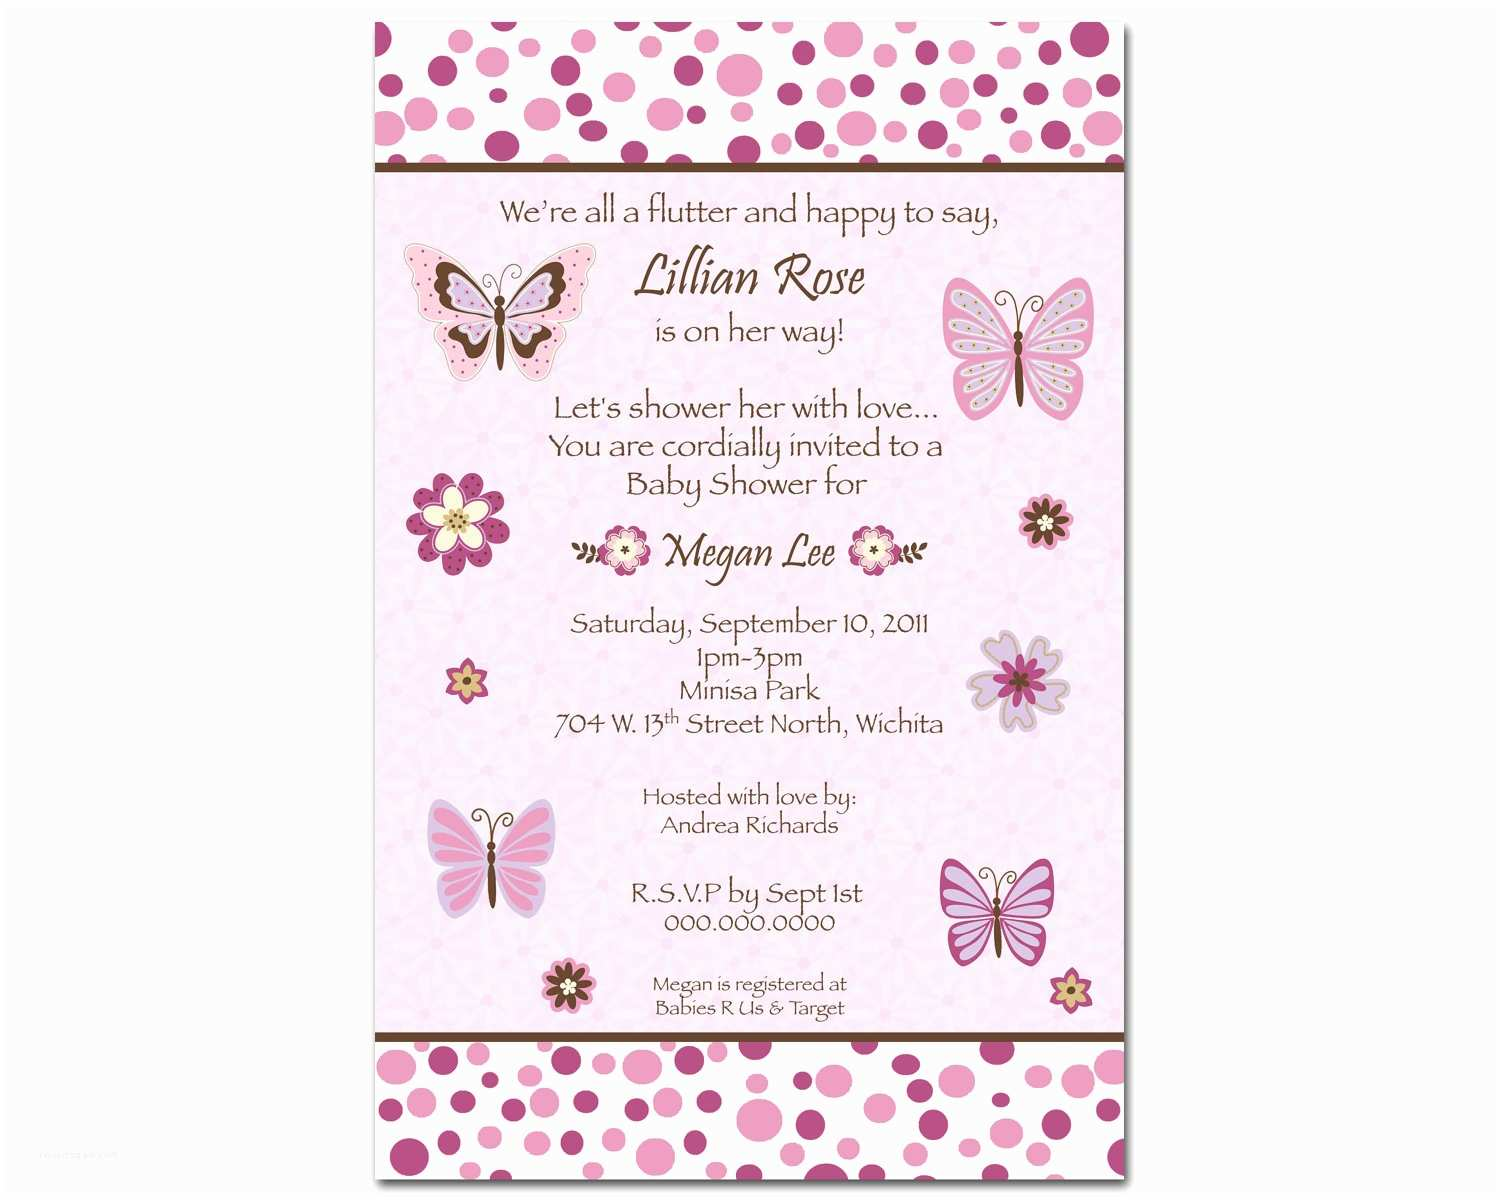 Funny Baby Shower Invitations Template Baby Shower Invitation Wording Funny Baby